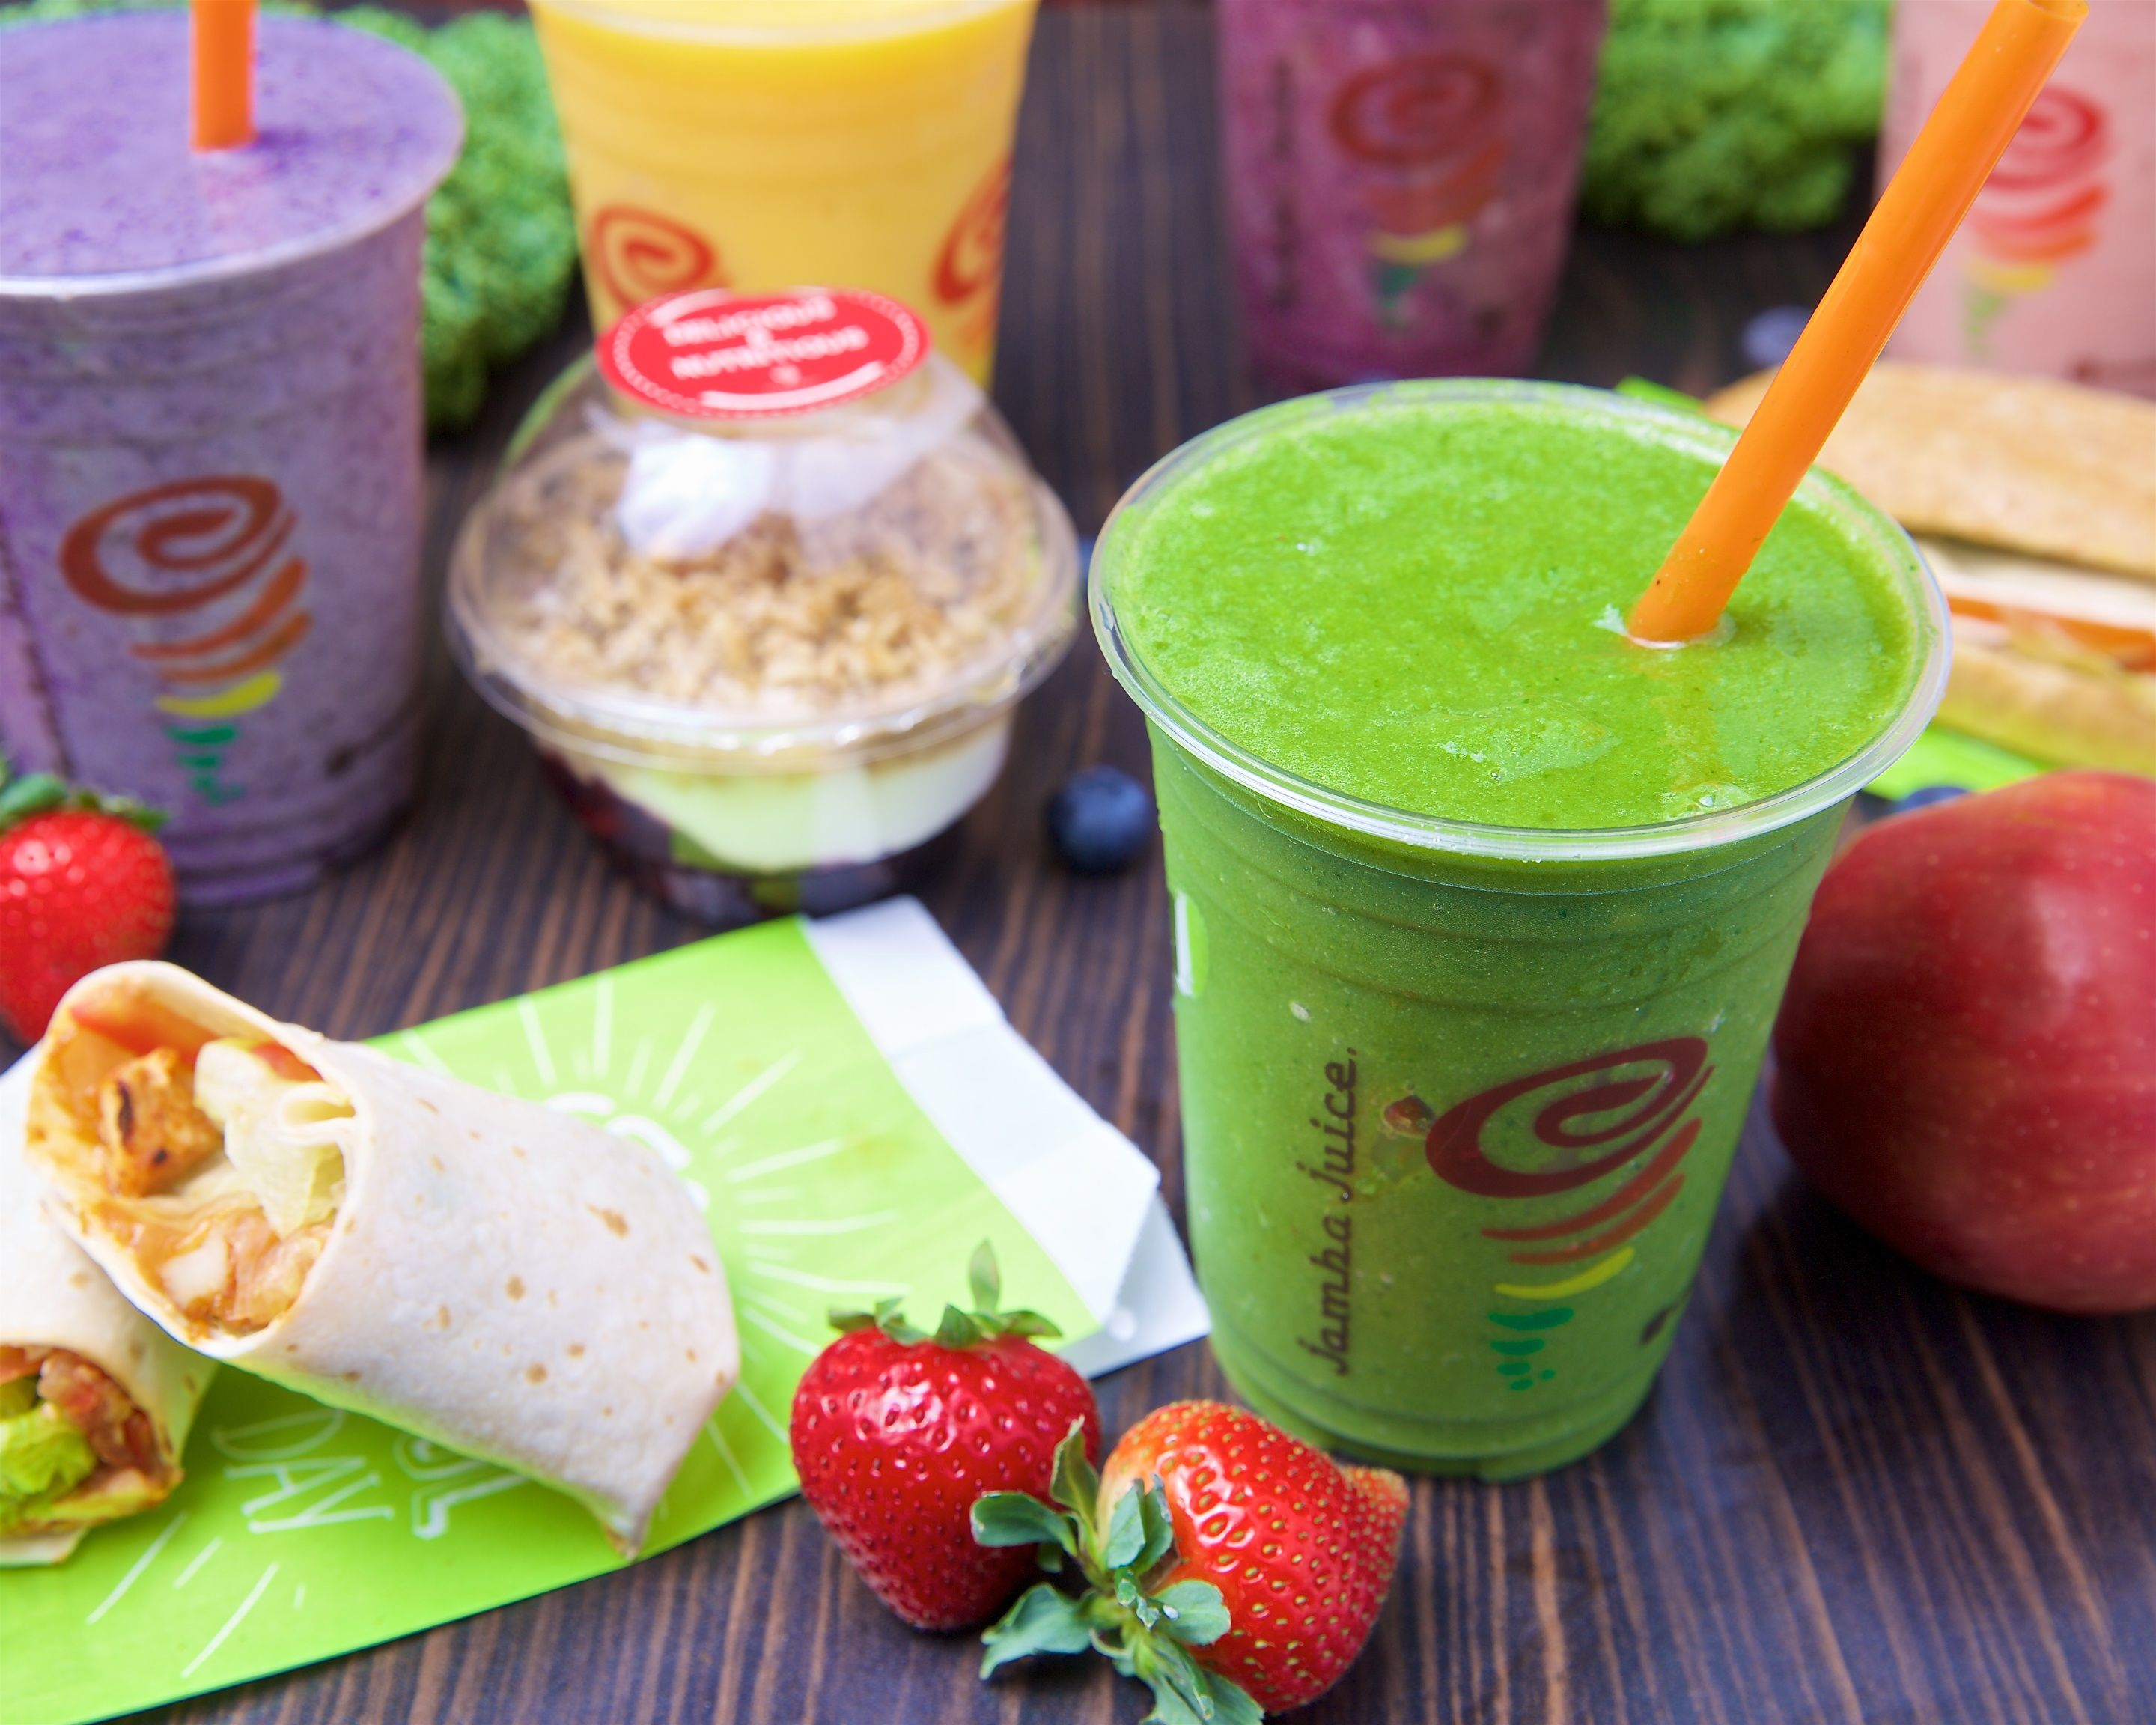 Jamba Juice 2118 E Florence Ave Delivery Los Angeles Uber Eats